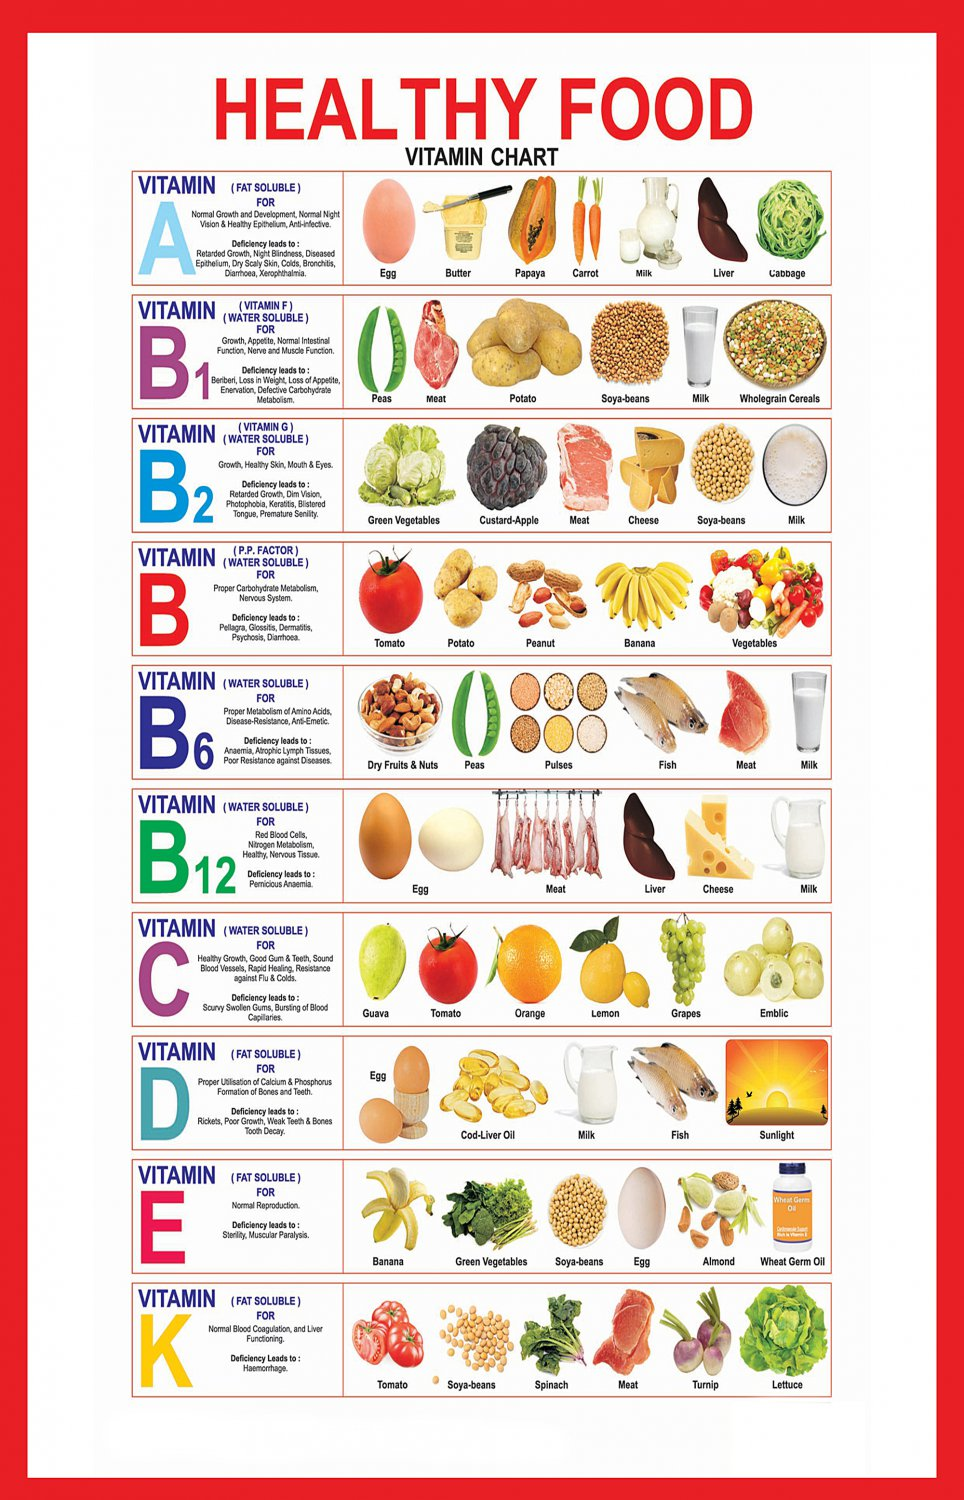 Healthy Food Vitamin Infographic Chart   18x28 inches Canvas Print